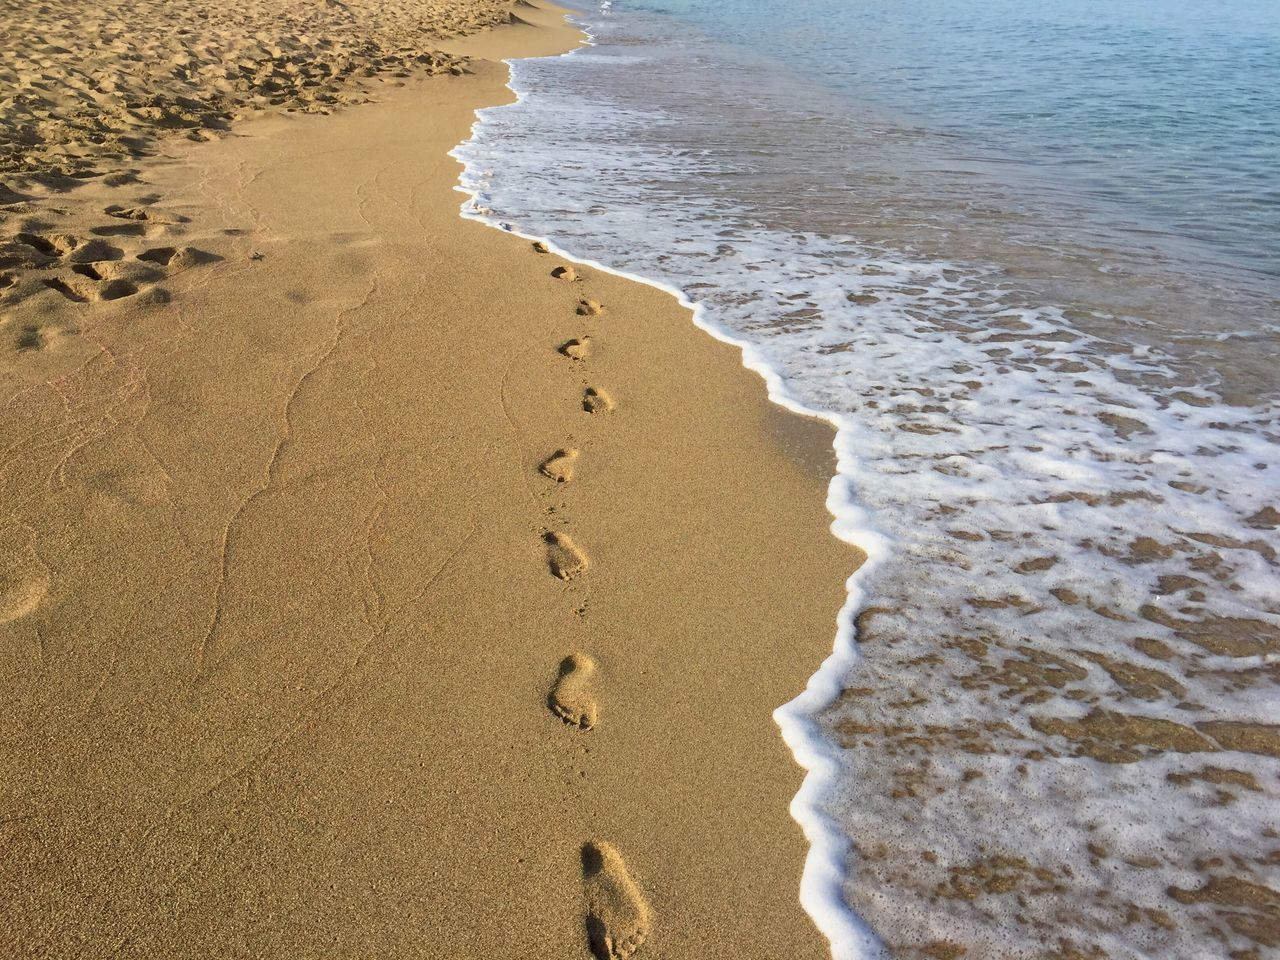 Vanishing footsteps on an empty quiet beach in Greece Beach Sea Sand Wave Water Surf Nature Outdoors Beauty In Nature Perfect Footsteps Tranquility Tourism Travel Greece Crete Travelling EyeEmNewHere